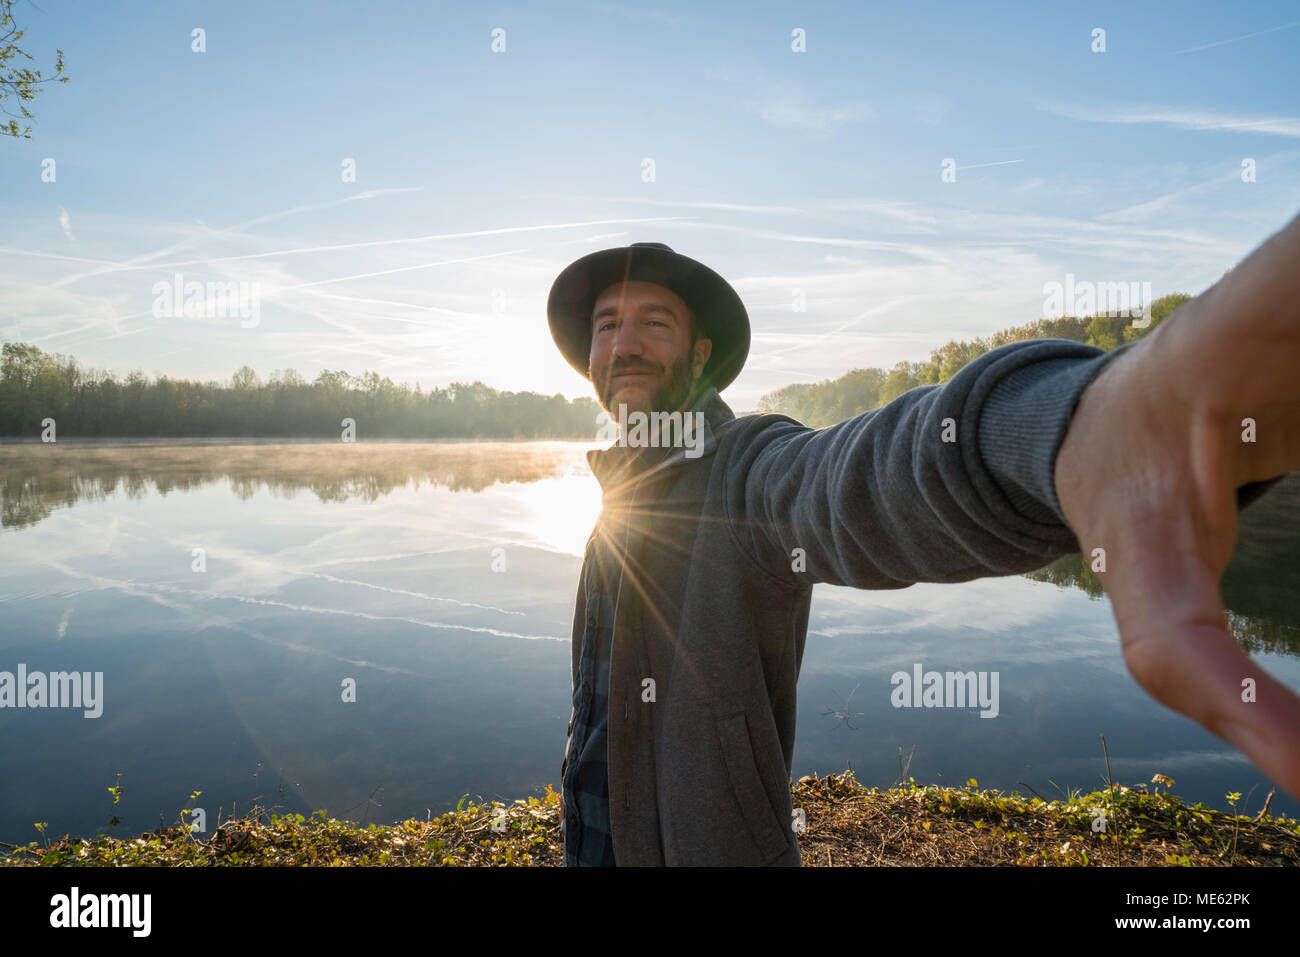 Young man by the lake at sunrise takes a selfie portrait using mobile phone, beautiful reflection on water surface. Travel people concept France Stock Photo